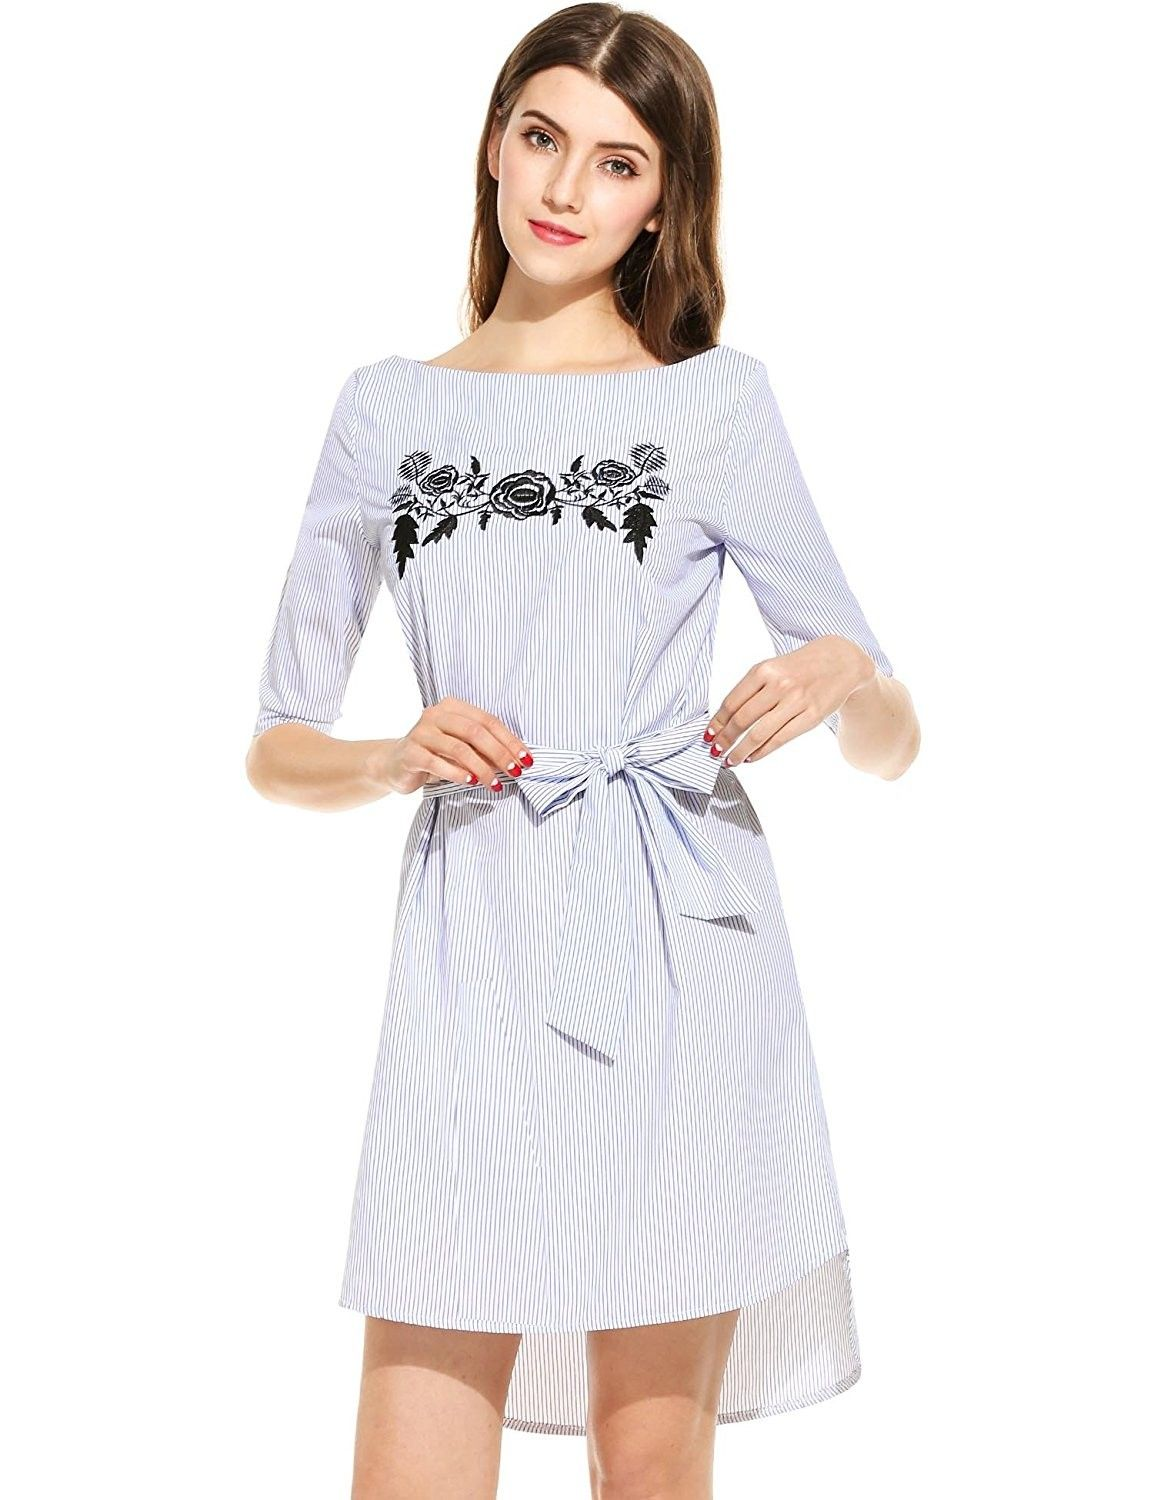 dbac5297a9322 Women's Boat Neck Floral Embroidered Striped Shirt Dress - Blue -  CR12O8N96JG,Women's Clothing, Dresses, Casual #women #fashion #clothing # outfits #sexy ...